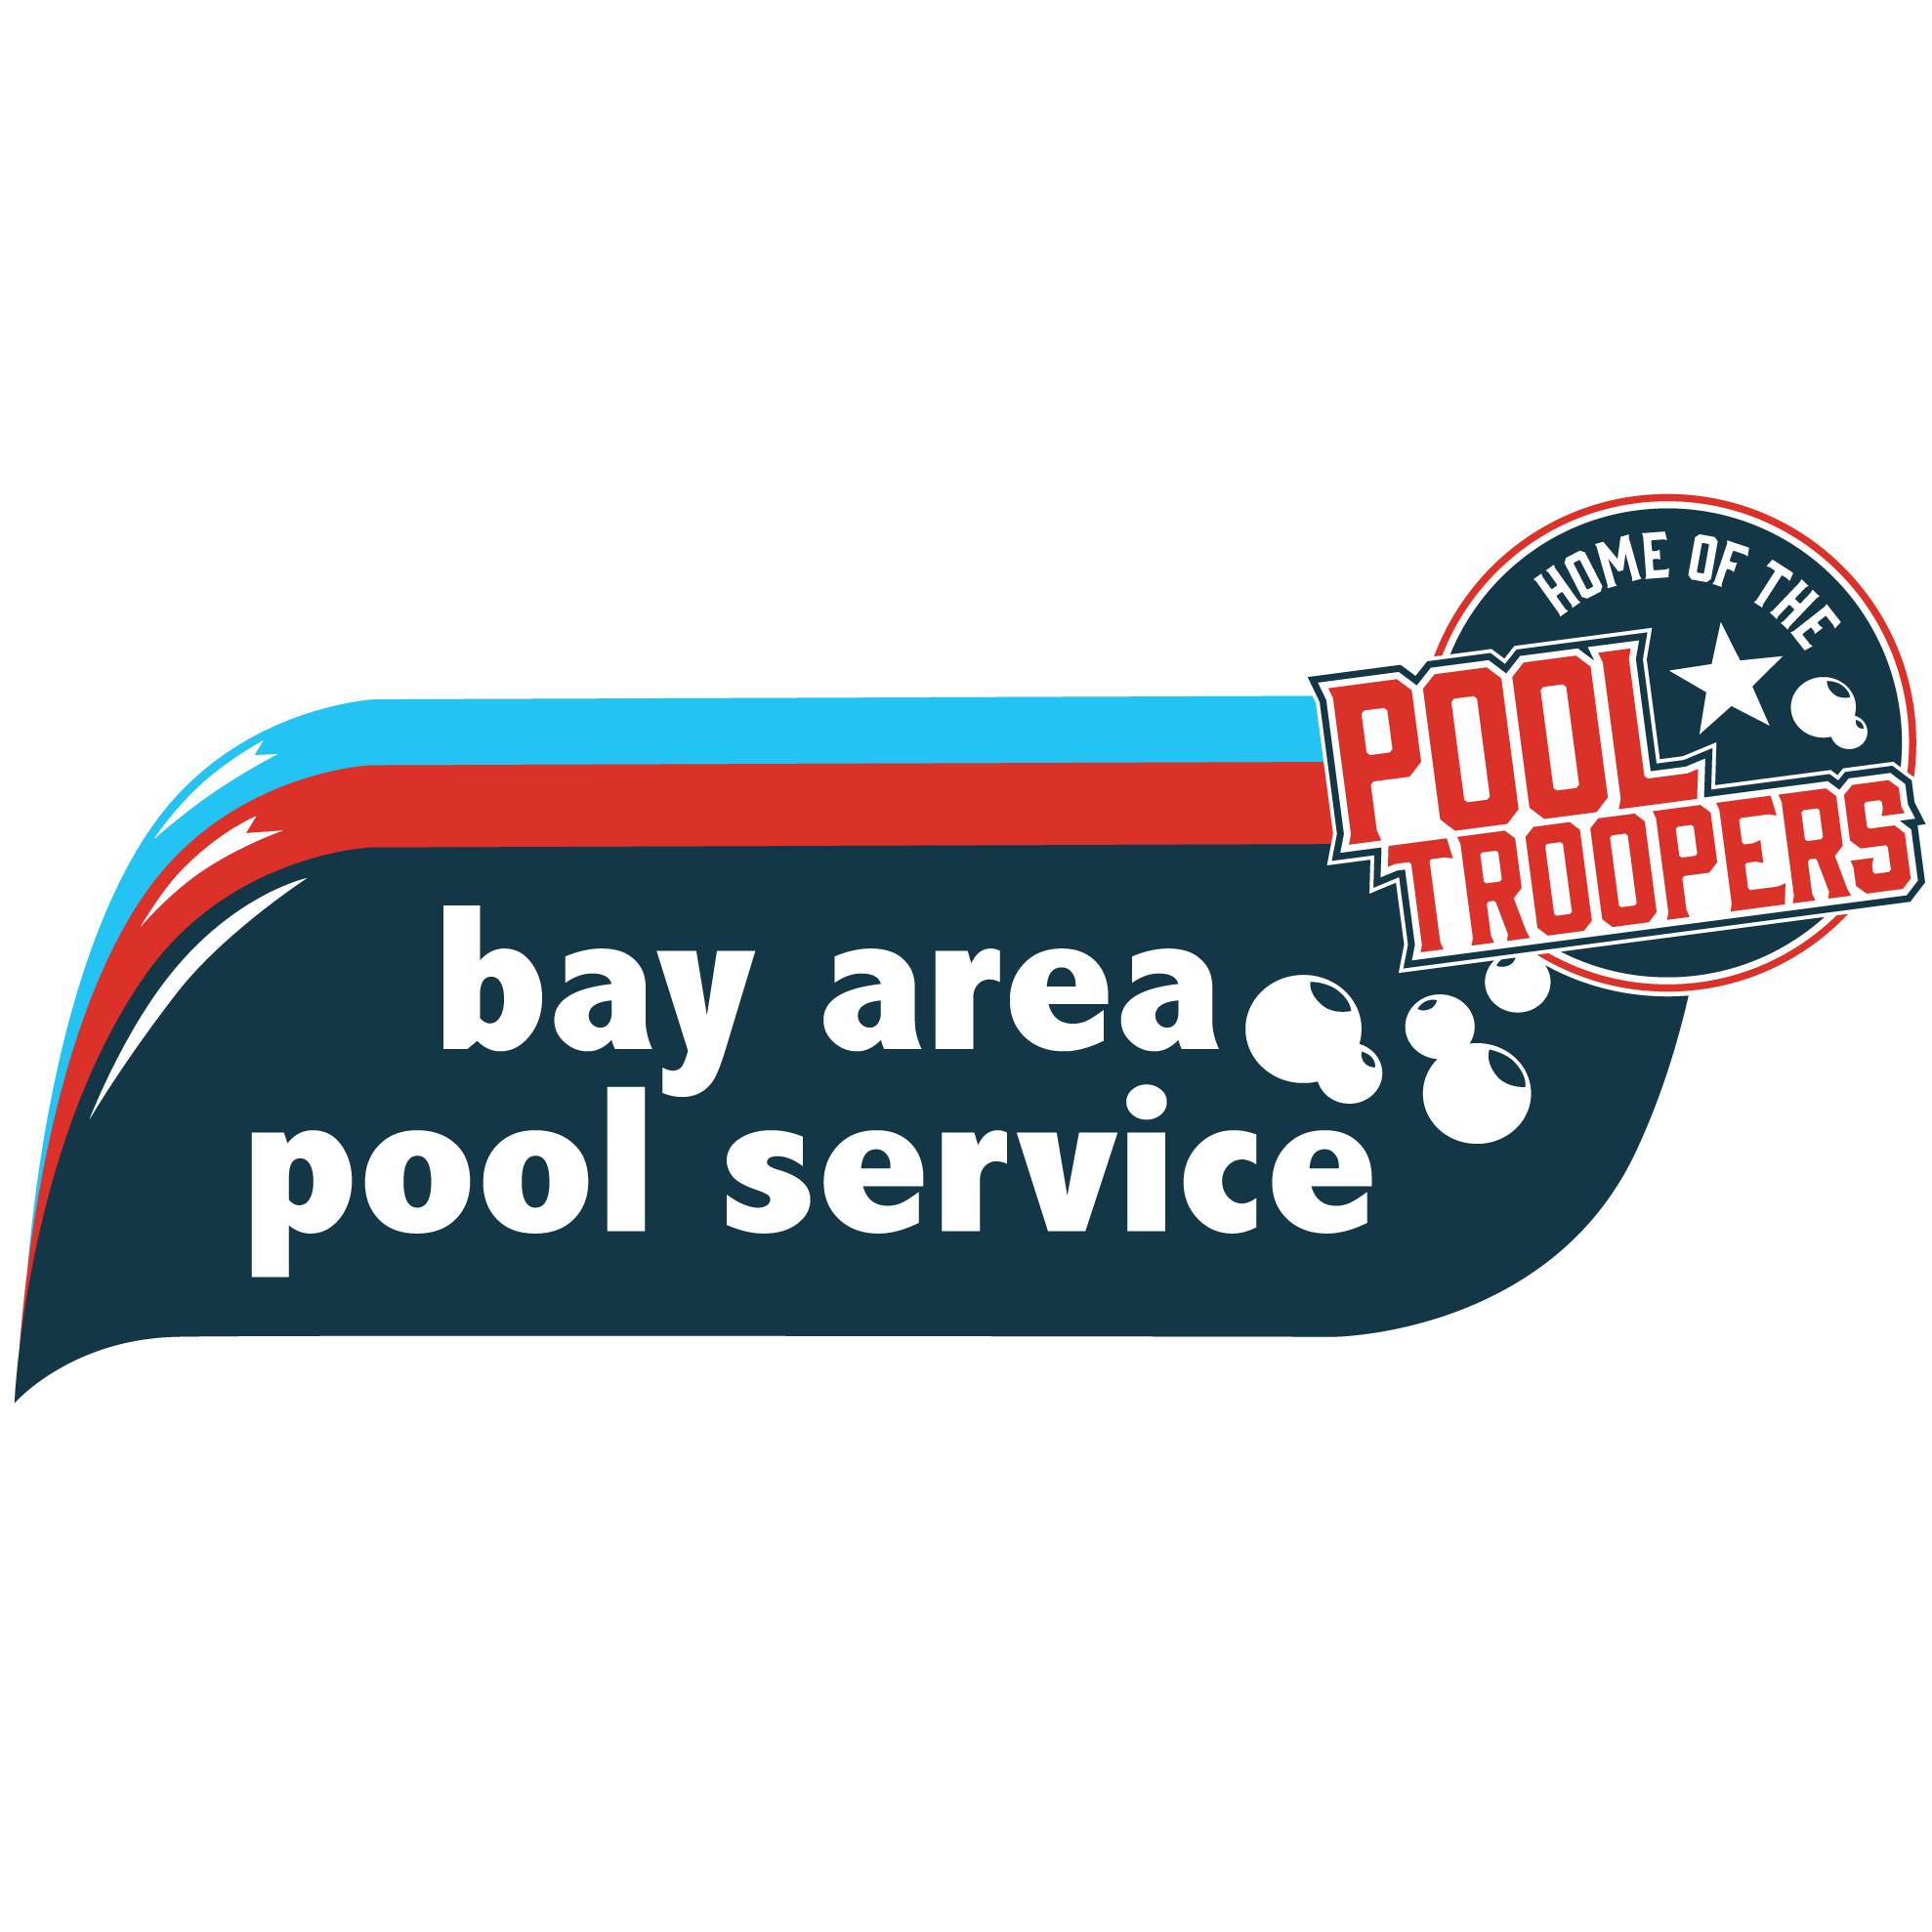 Bay Area Pool Service is Closed - Now Pool Troopers